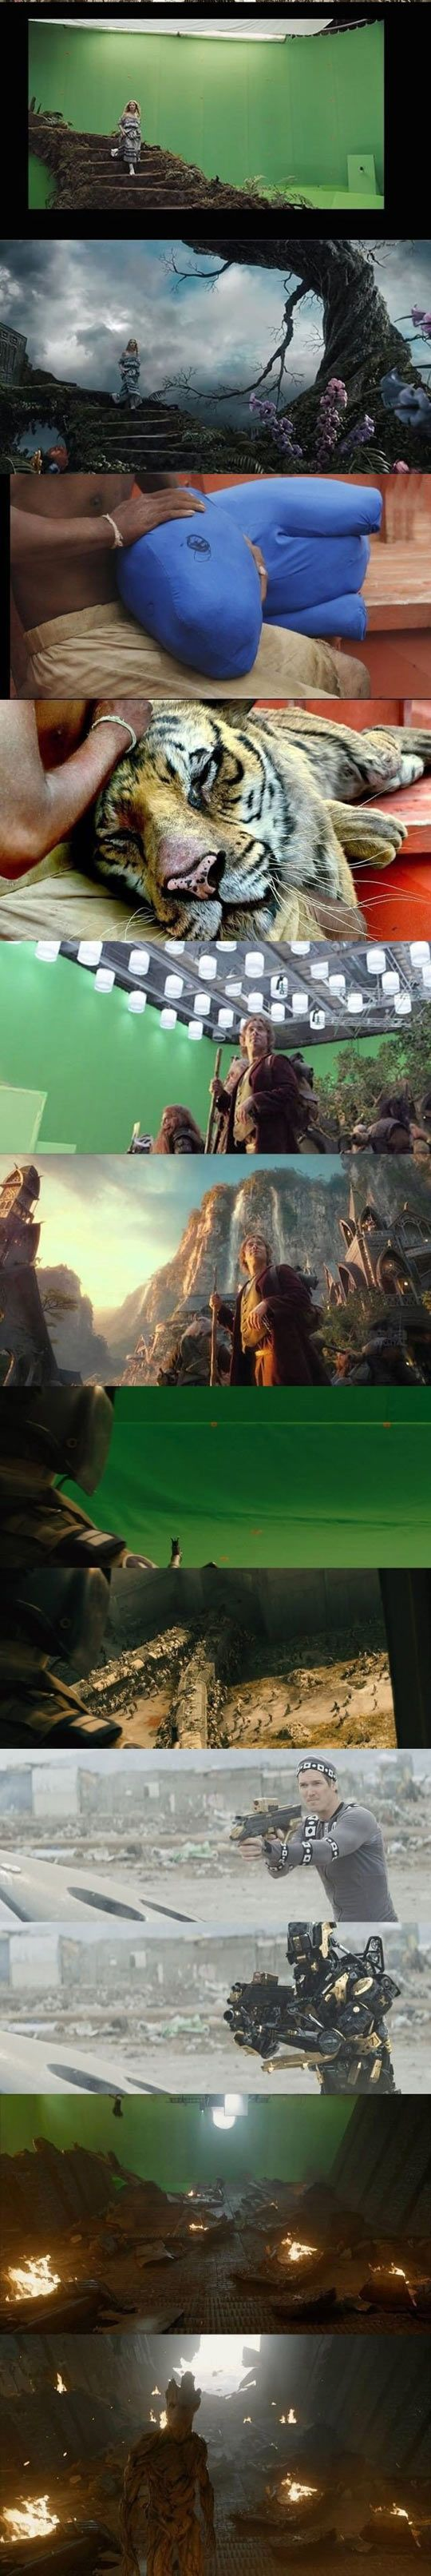 The Meta Picture ~ Movie, Before & After // #thelifeofpi #aliceinwonderland #movie #disney #greenscreen #beforeandafter #thehobbit #lordoftherings #marvel #guardiansofthegalaxy